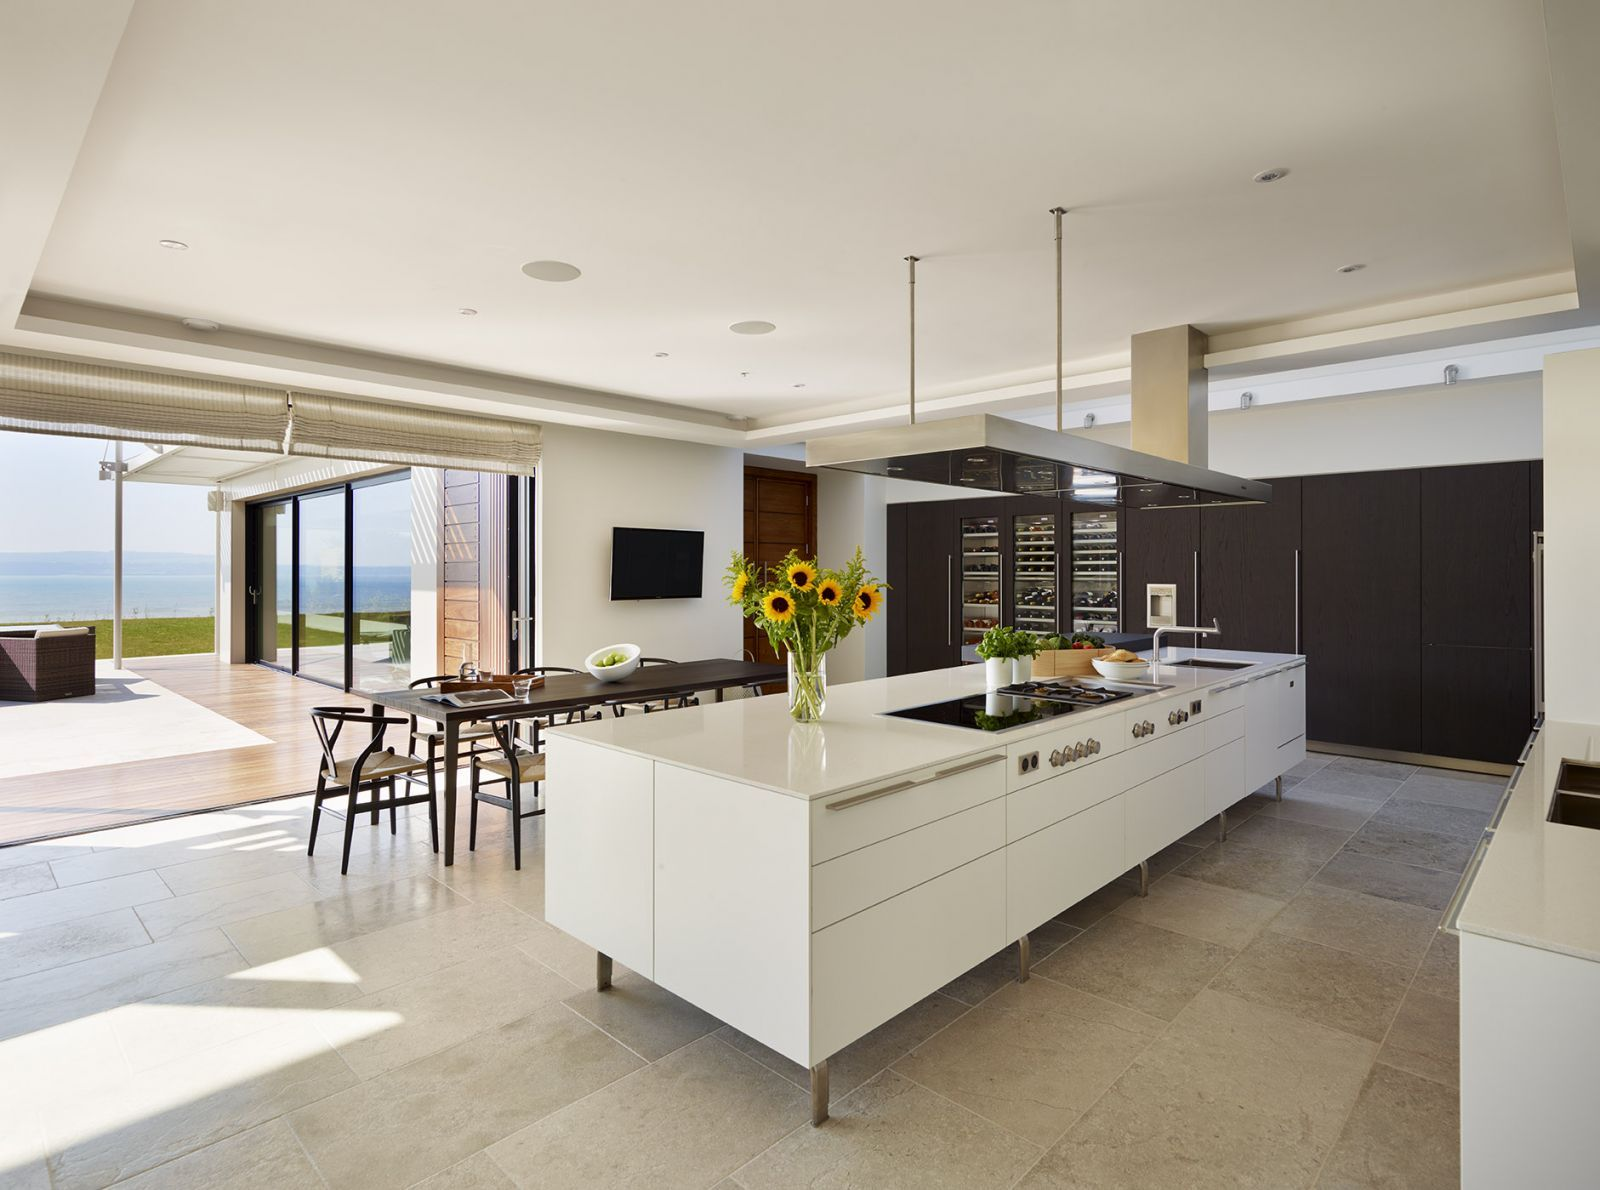 Bulthaup B3 Kitchen Project With Sea Views Designed By